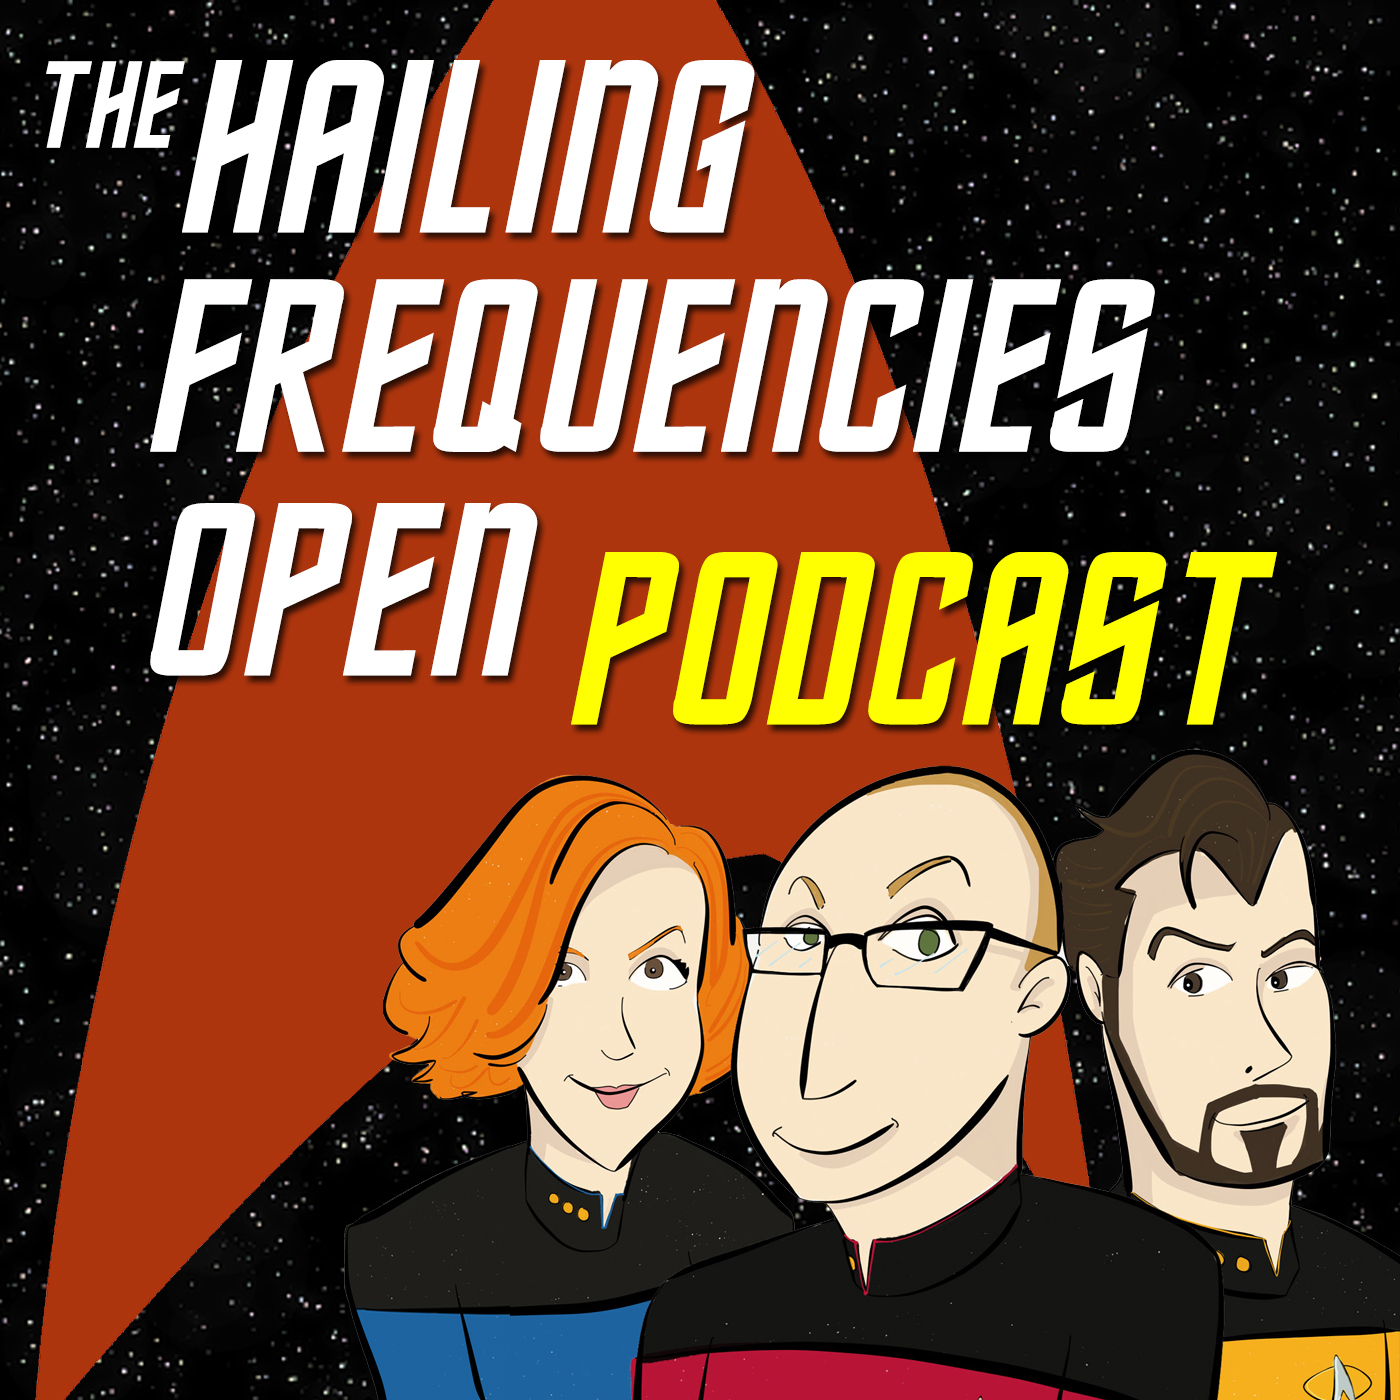 HFO Podcast Ep. #25 - A Star Trek Holiday Special show art